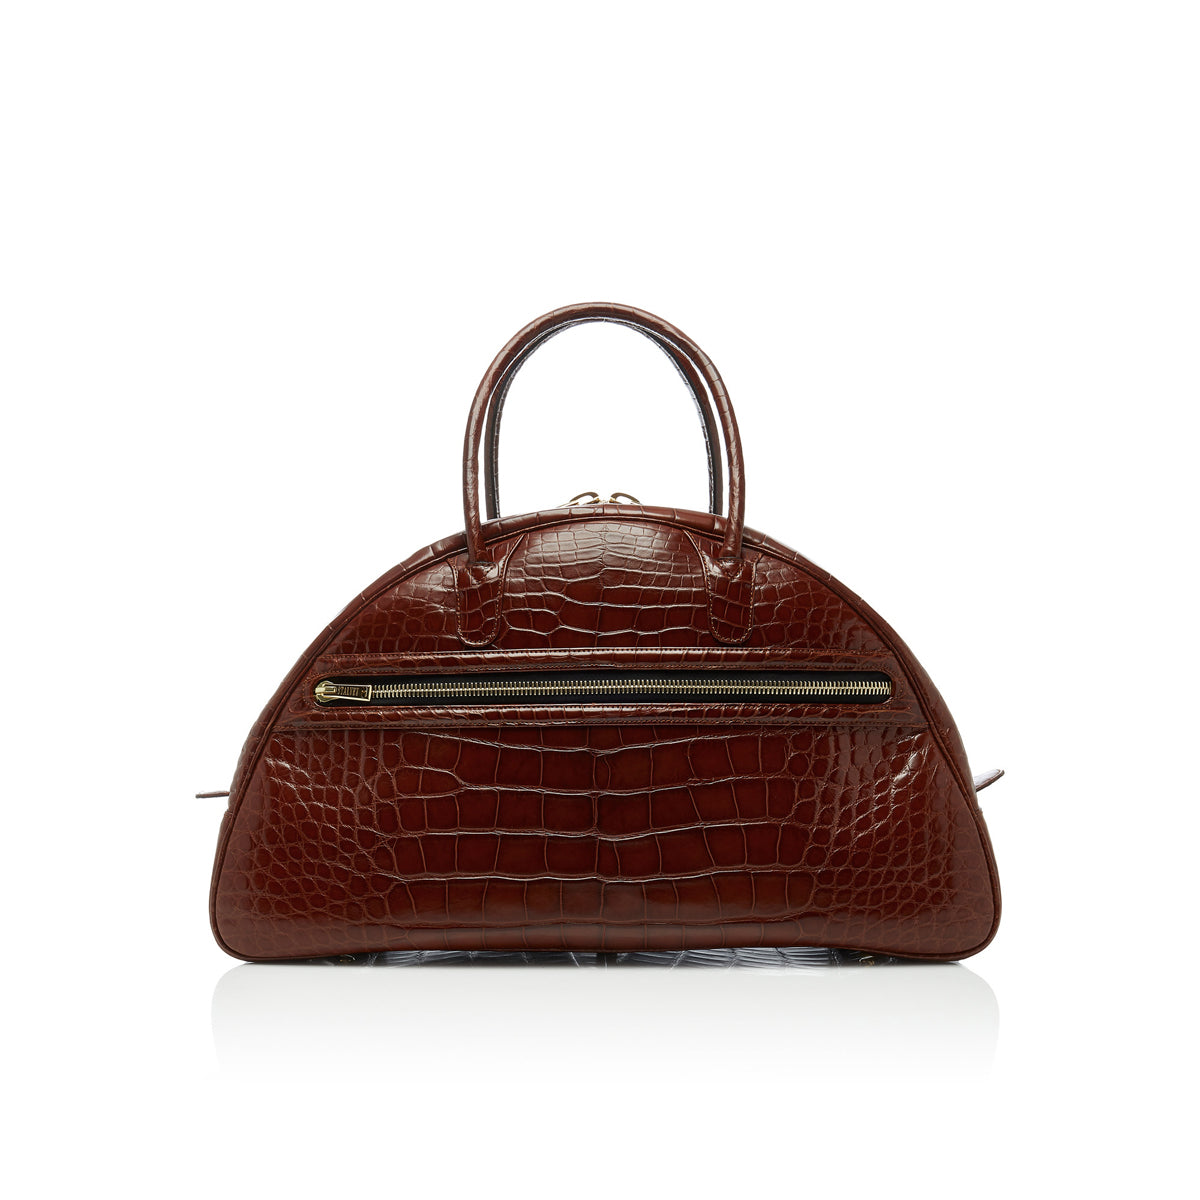 Canovas Gym Bag - Brown Alligator